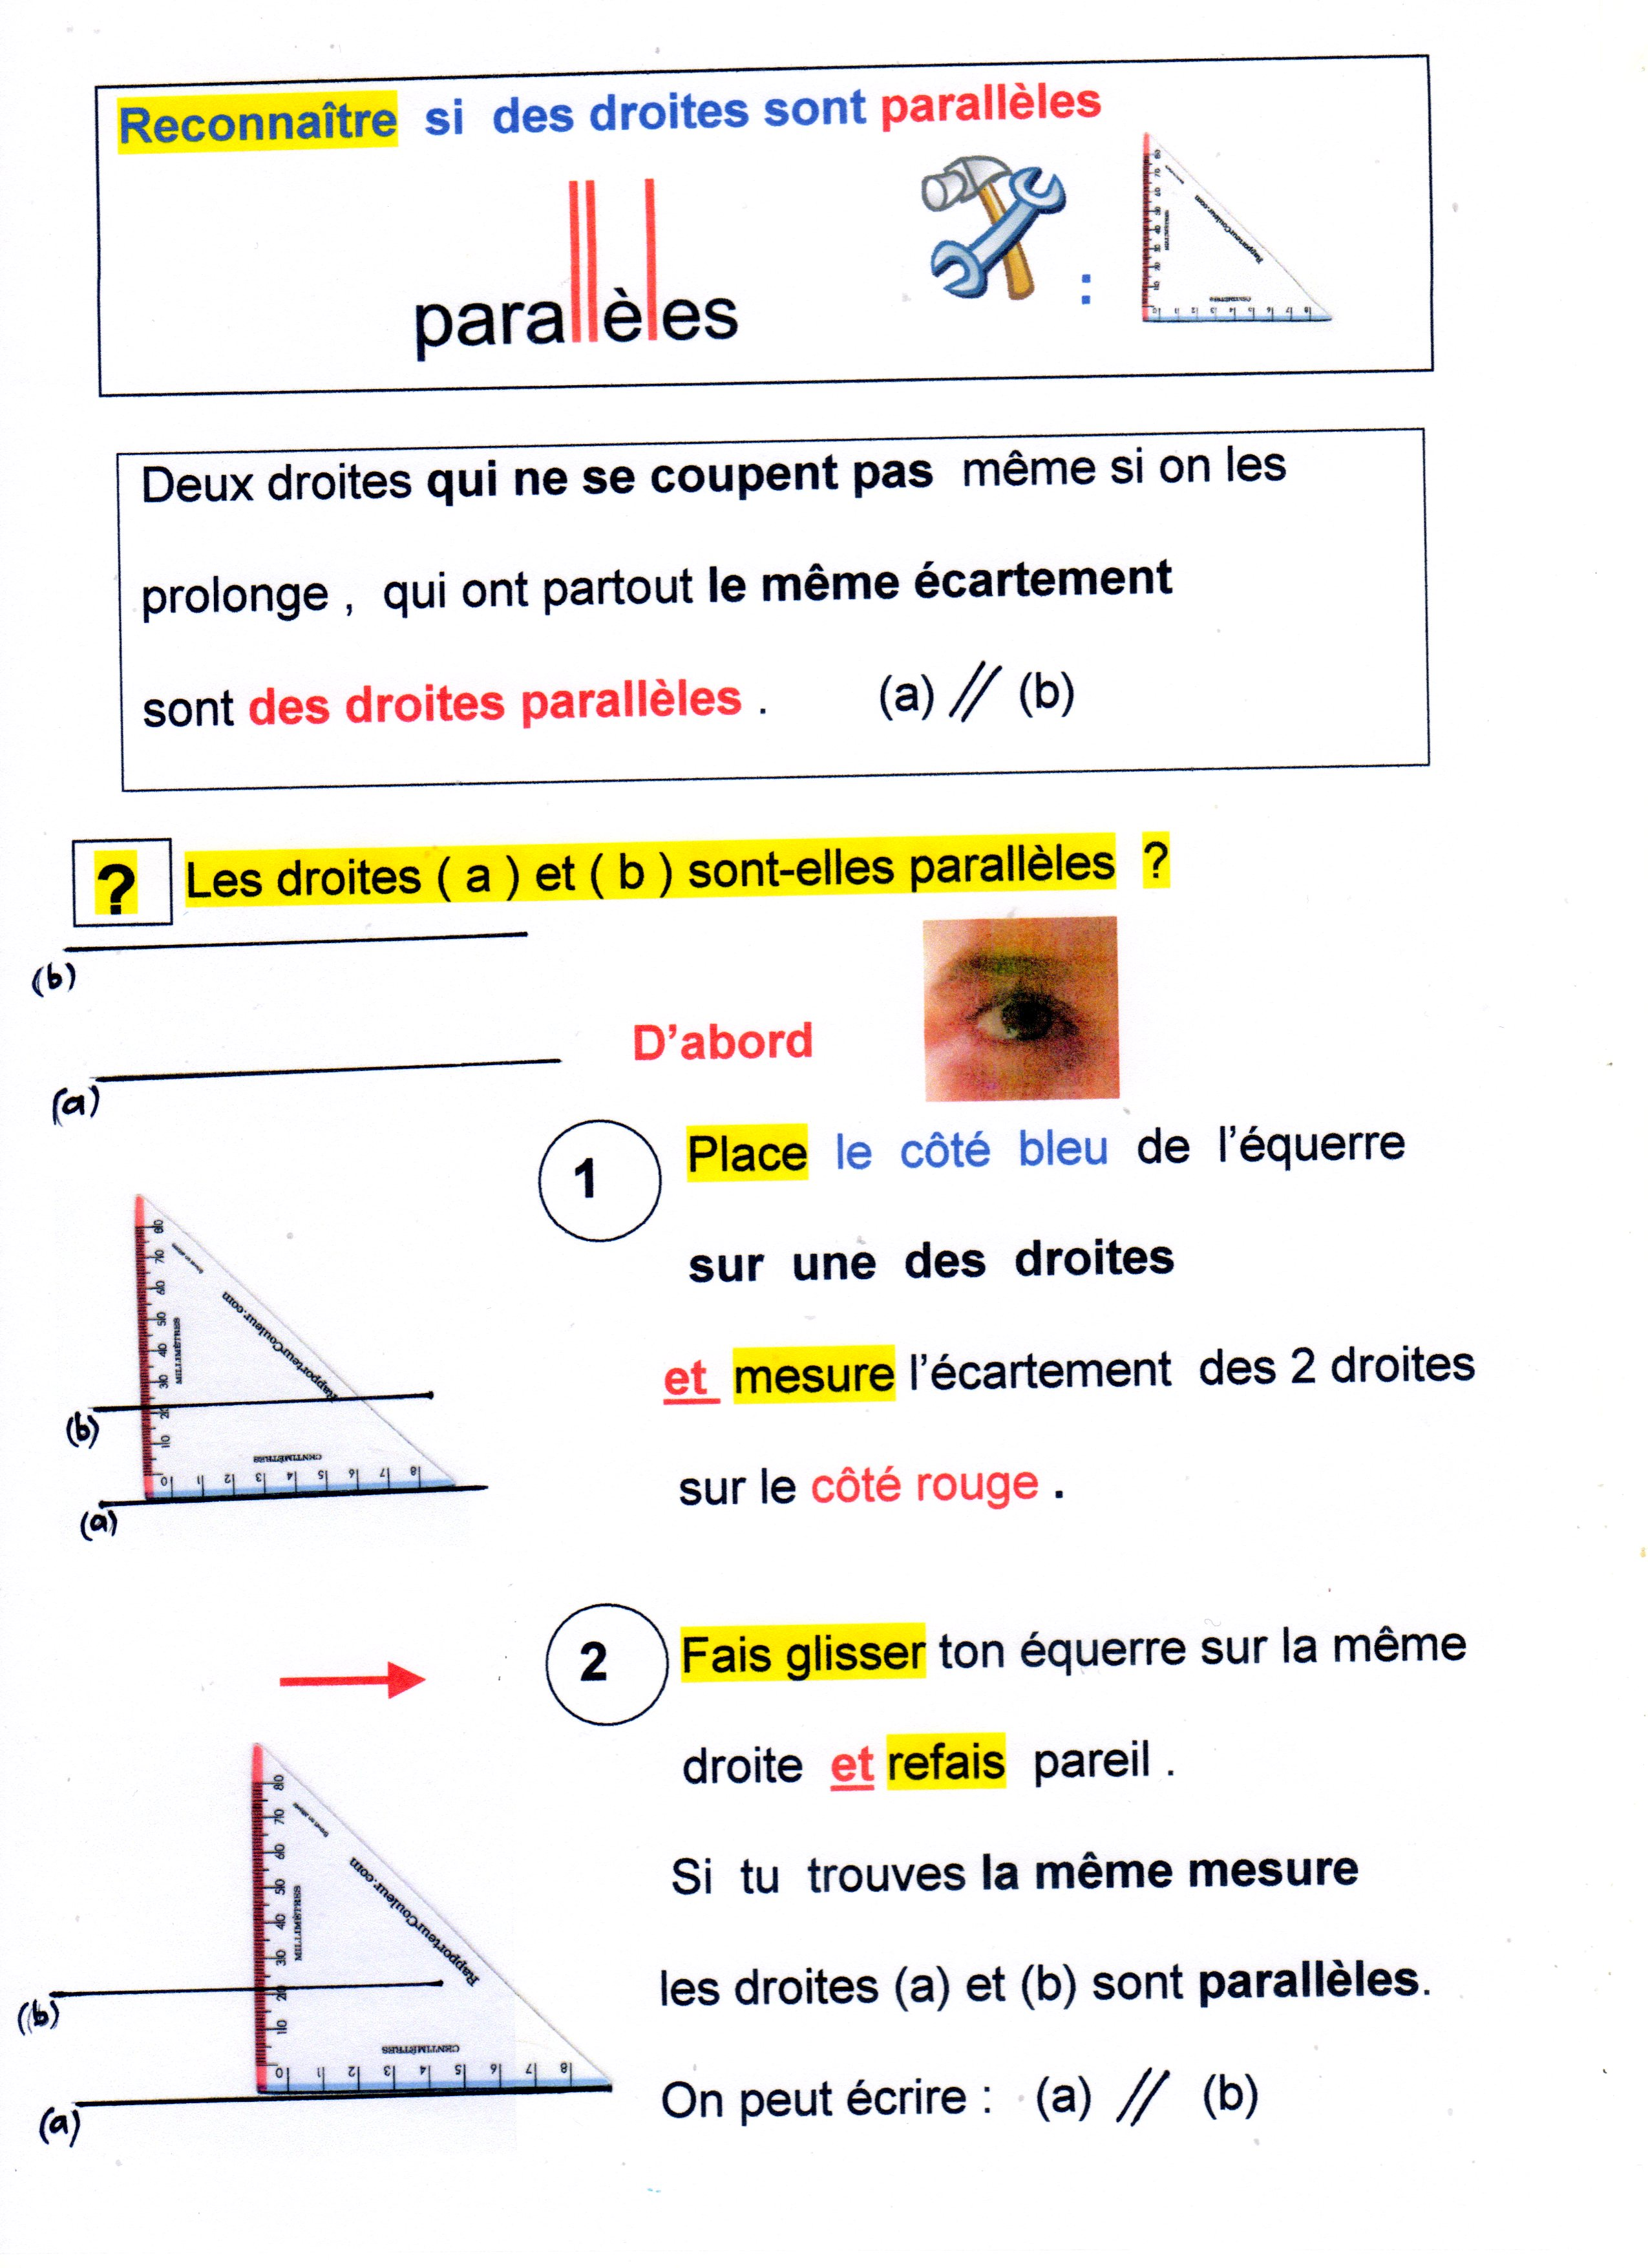 007 Conjugate Essayer Essay Example Magnificent In Conditional Imparfait Payer The Future Tense Full